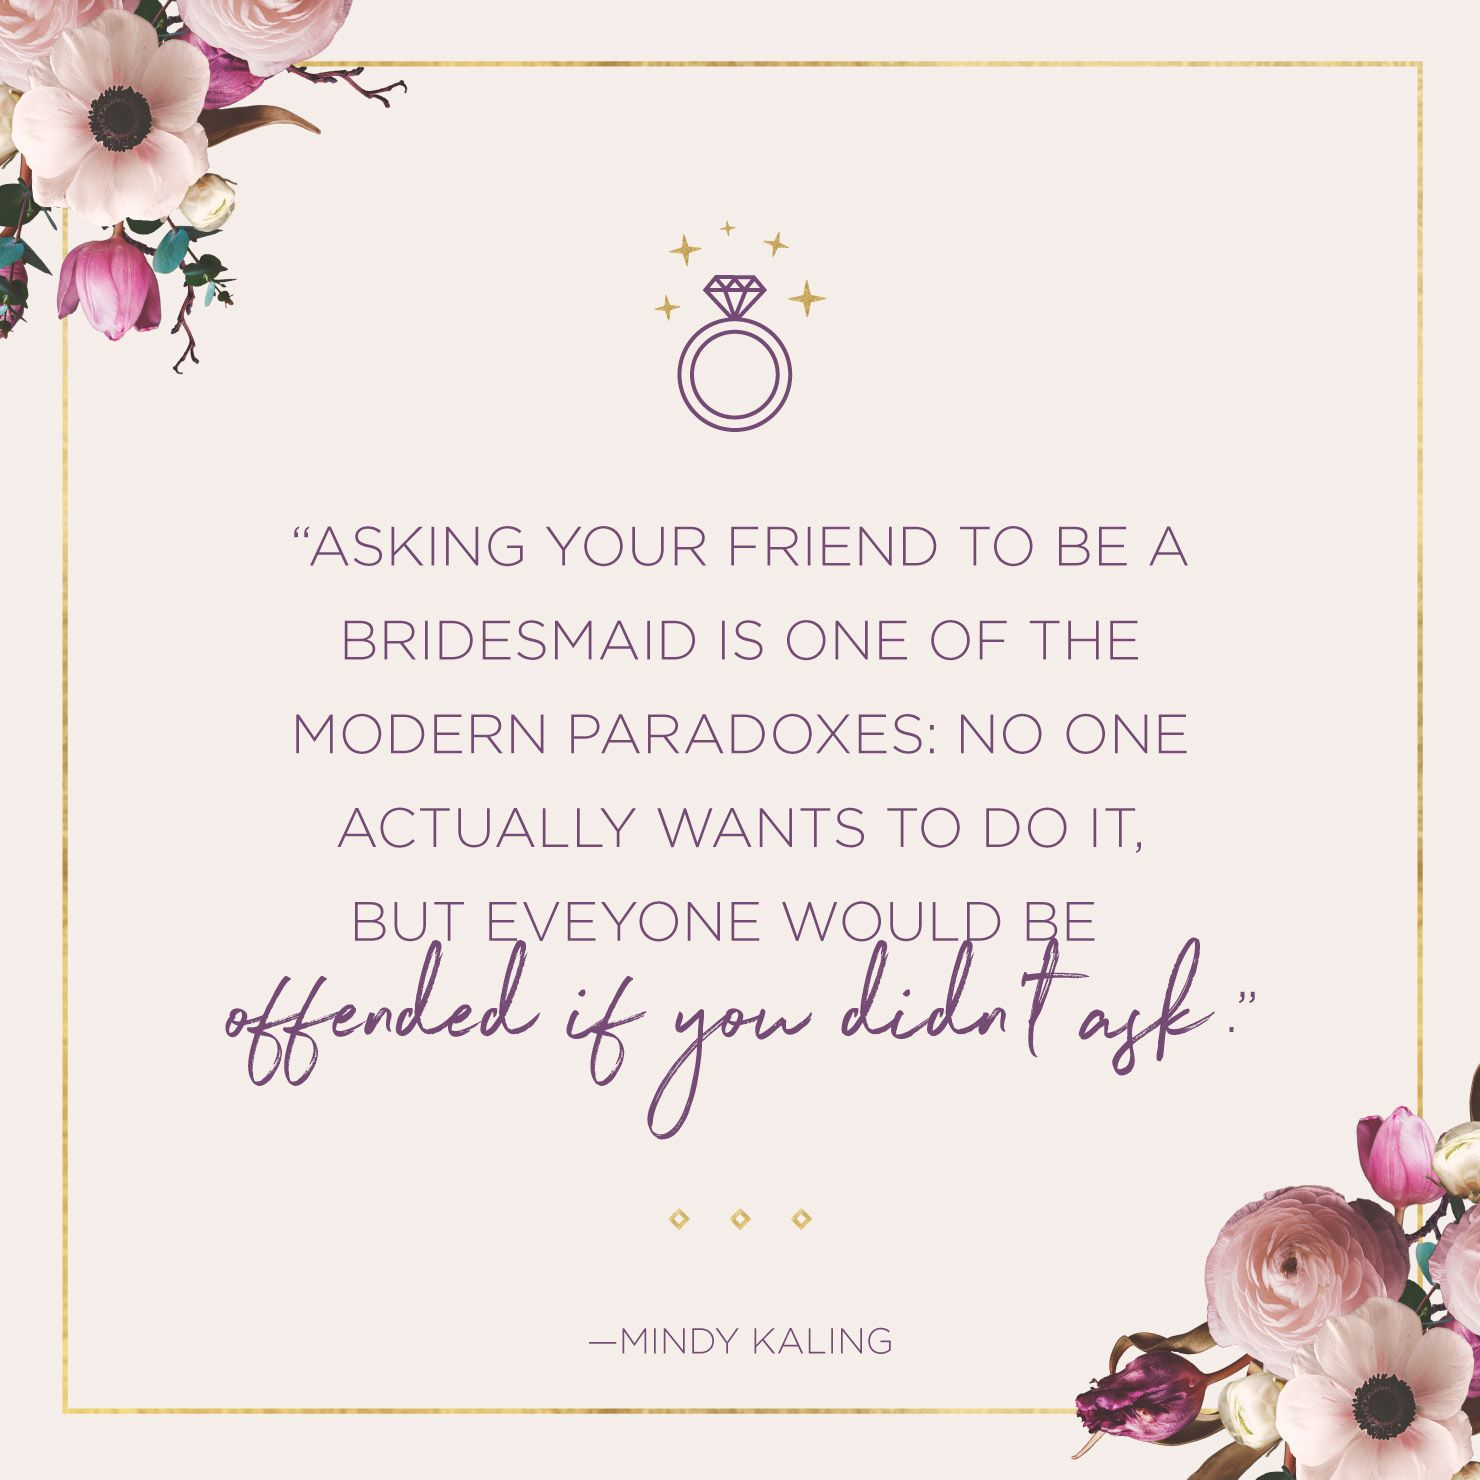 83 Bridesmaid Quotes And Sayings Proposal Ideas Shutterfly Bridesmaid Quotes Friendship Quotes Funny Quotes For Teens